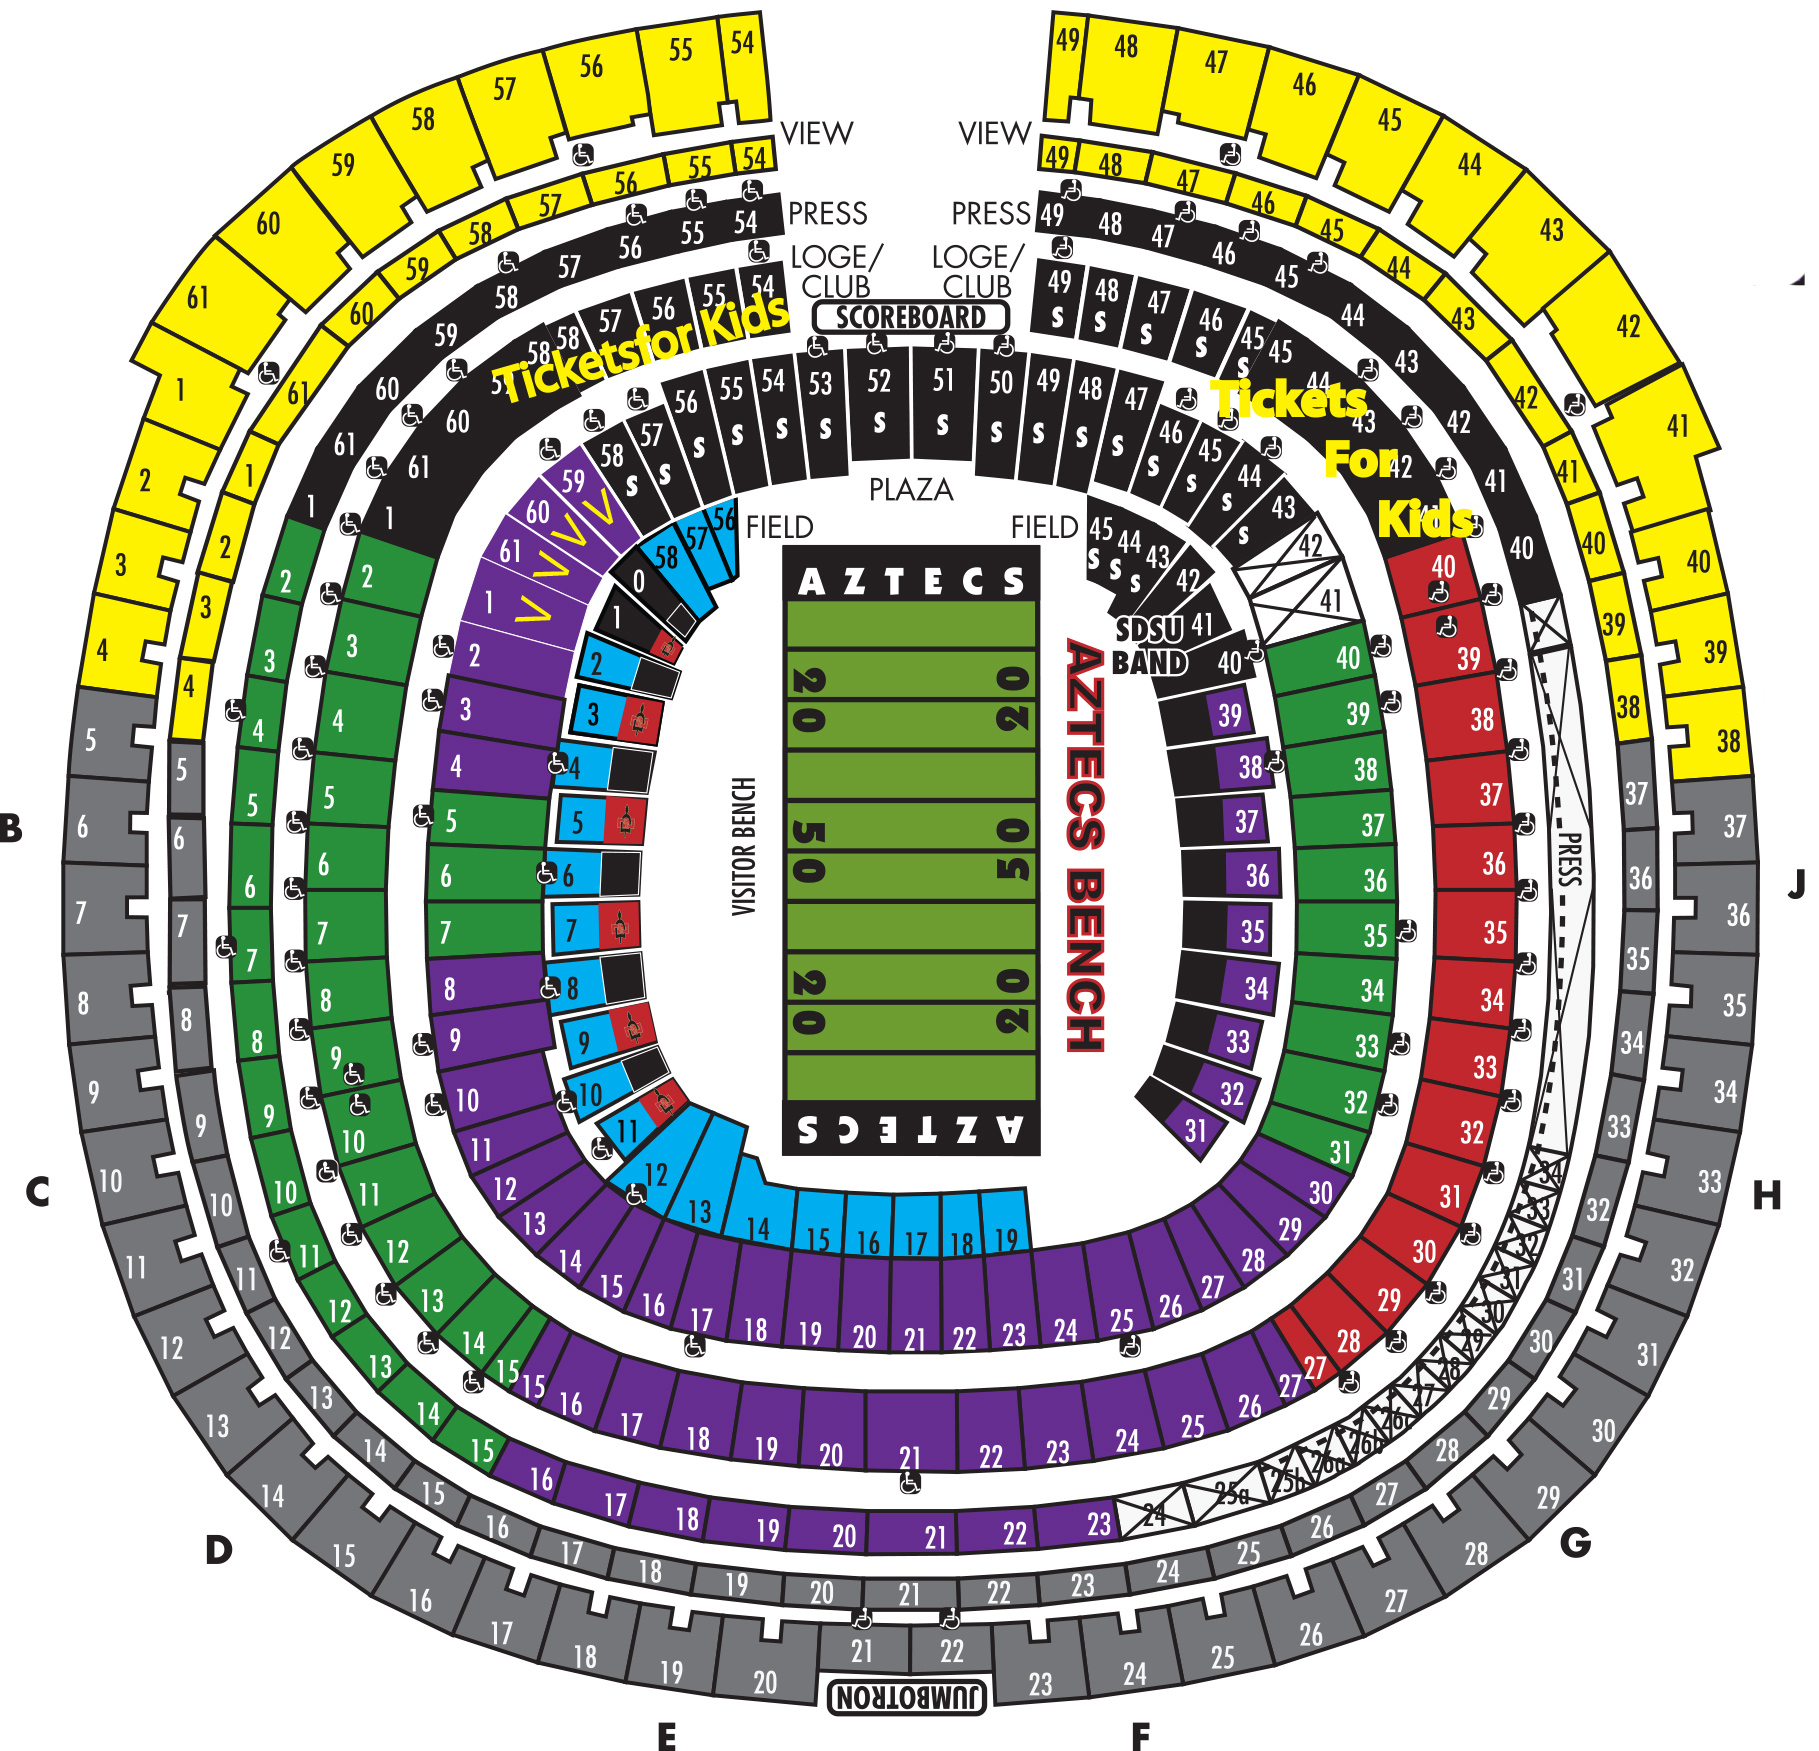 Qualcomm Seating Chart